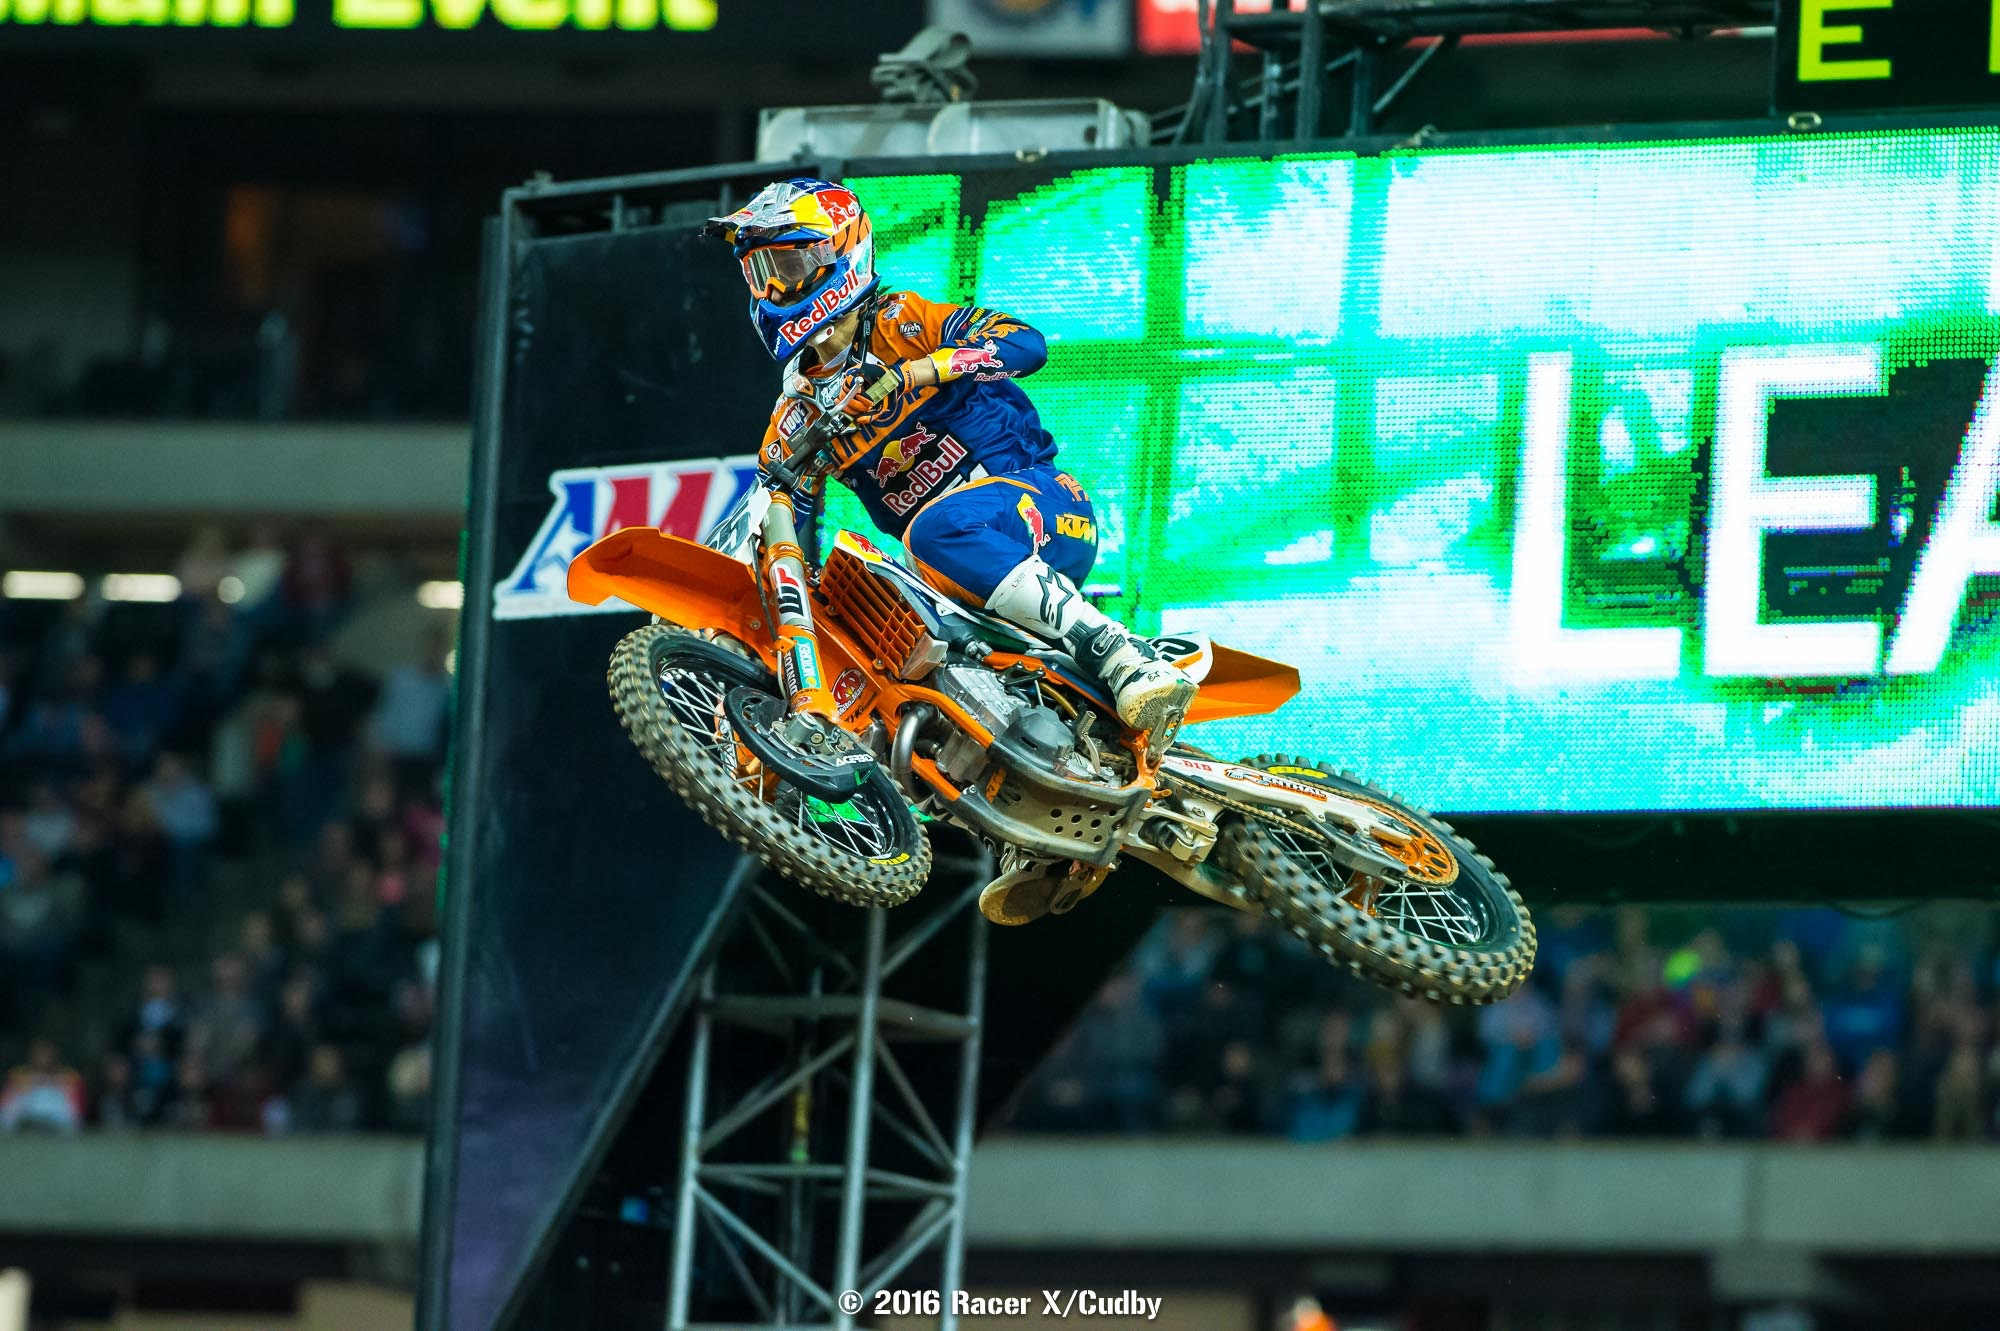 Marvin rode incrediby well. For 19 laps, it looked like he had the stuff to hold Dungey at bay.